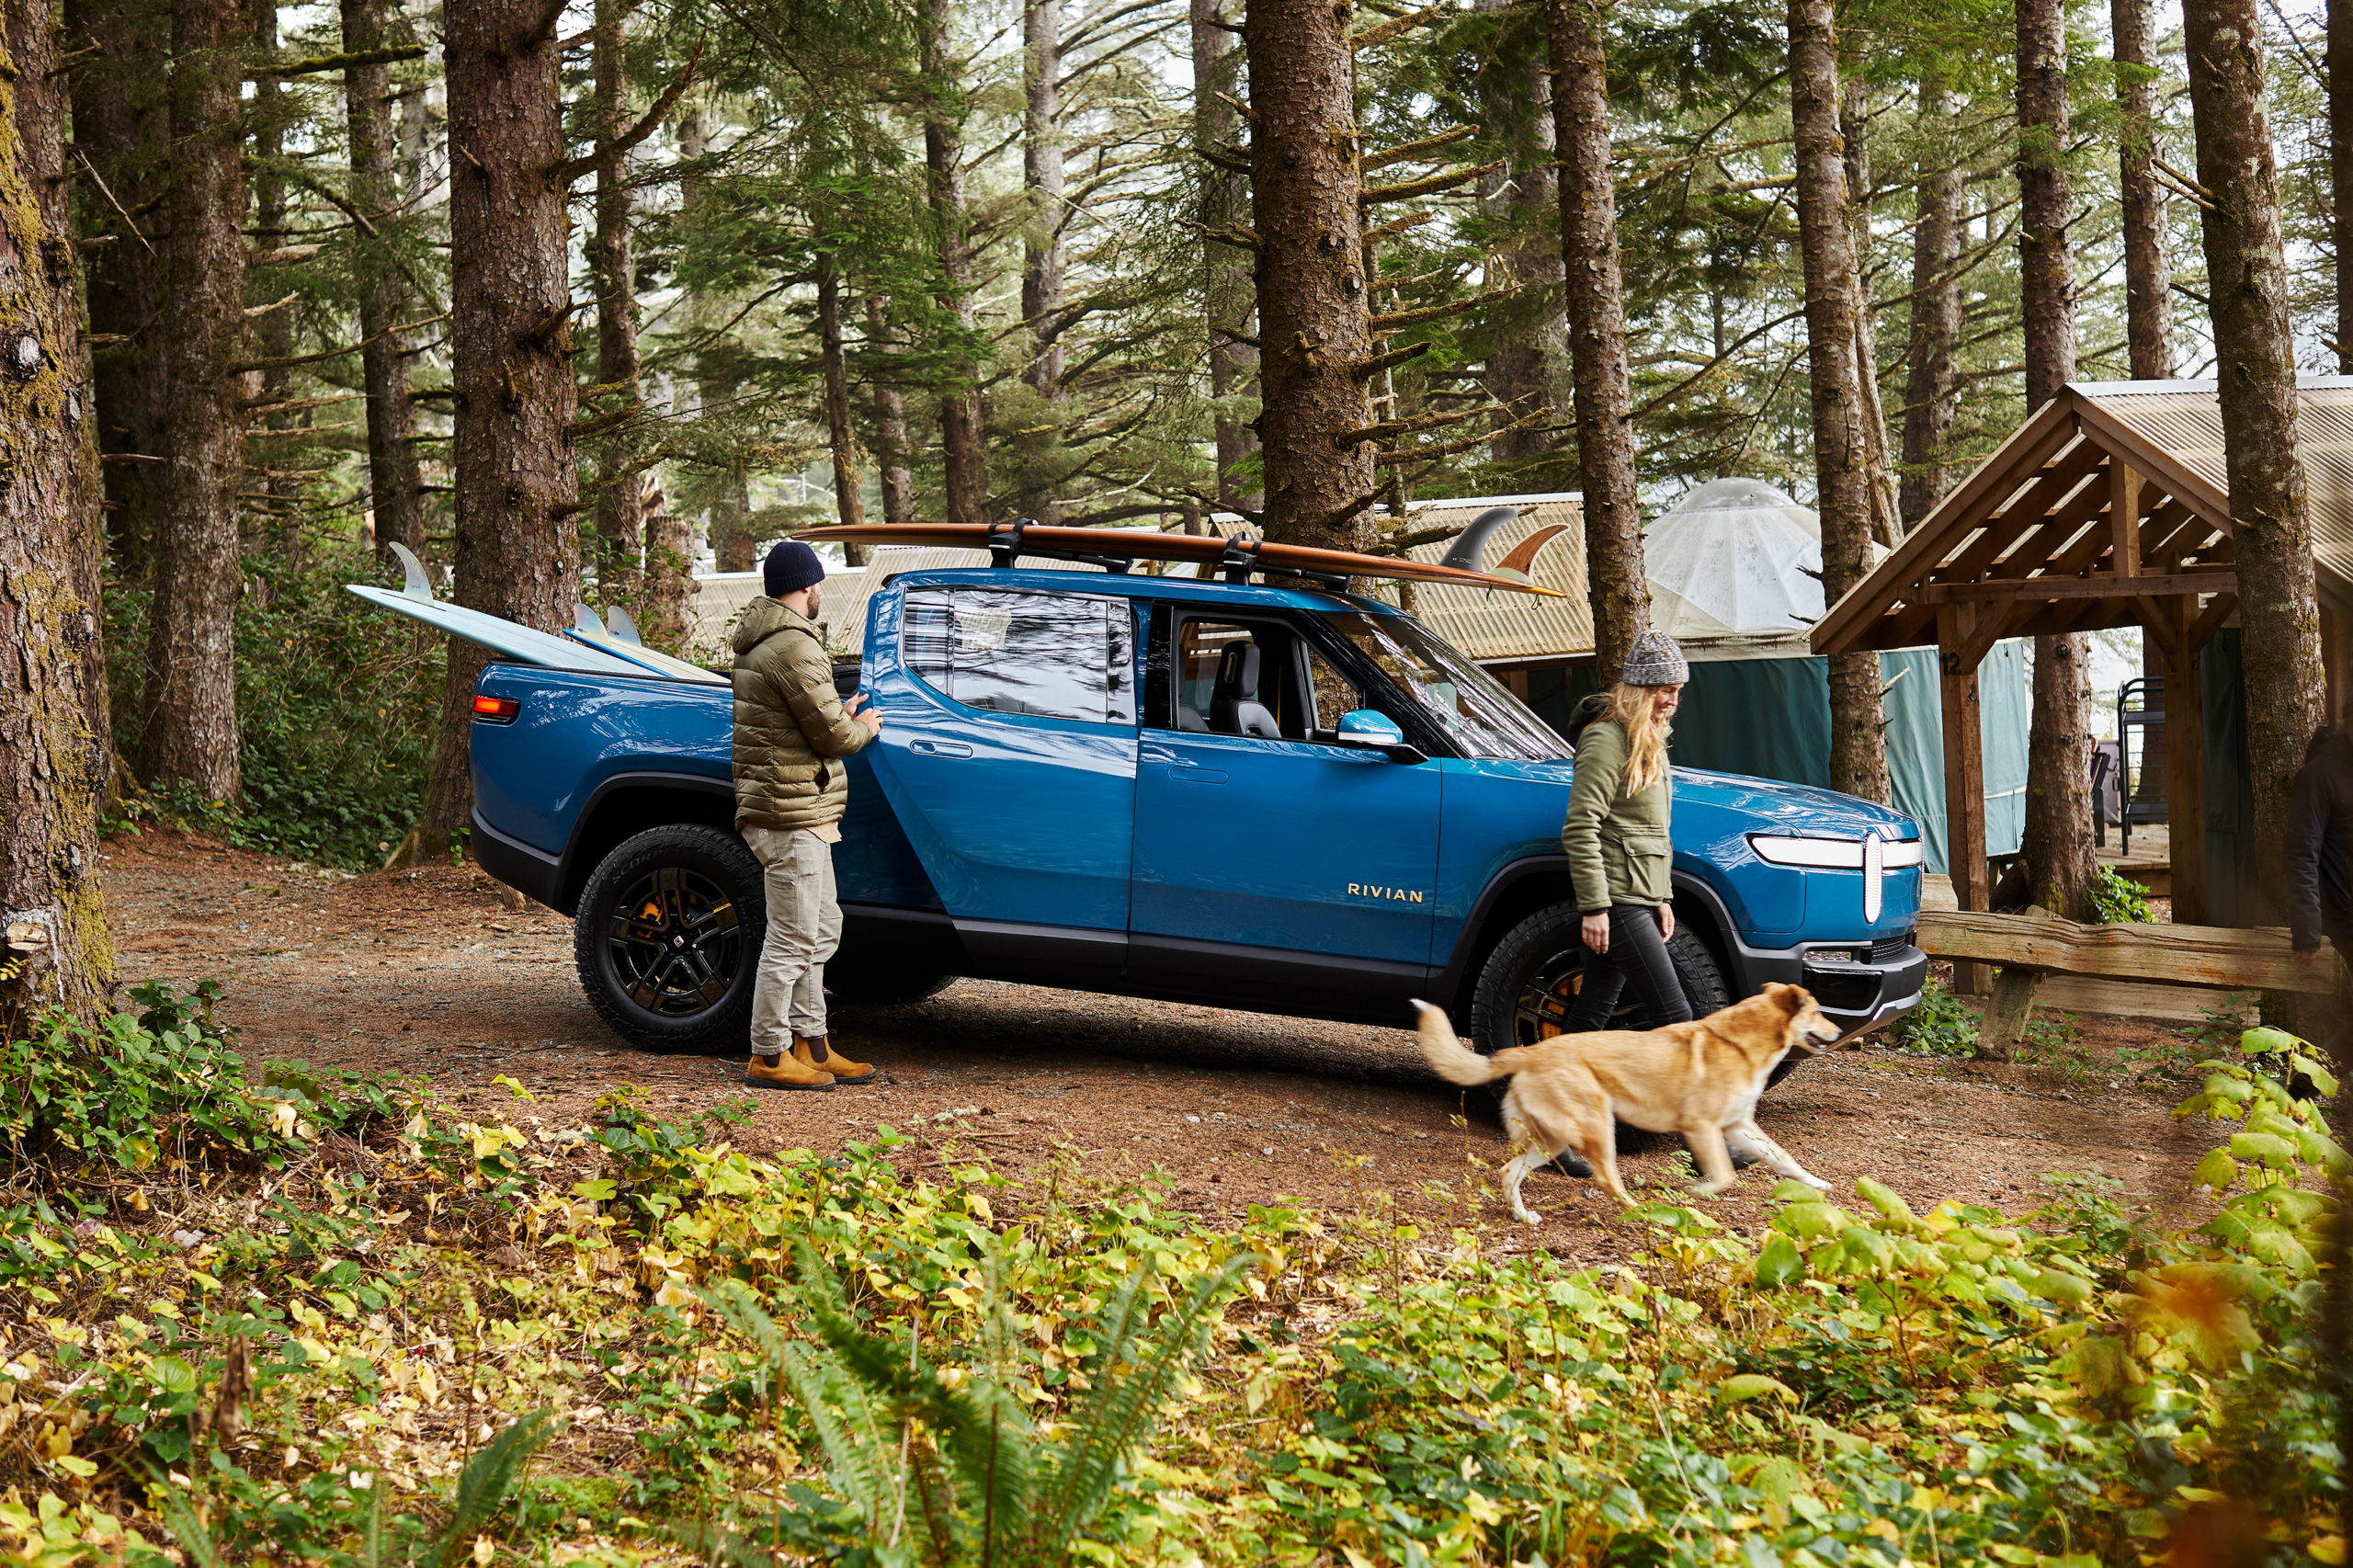 2018 11 Jeff Johnson Rivian R1TBlue BC Static WidePS LS 058A4500 scaled 1